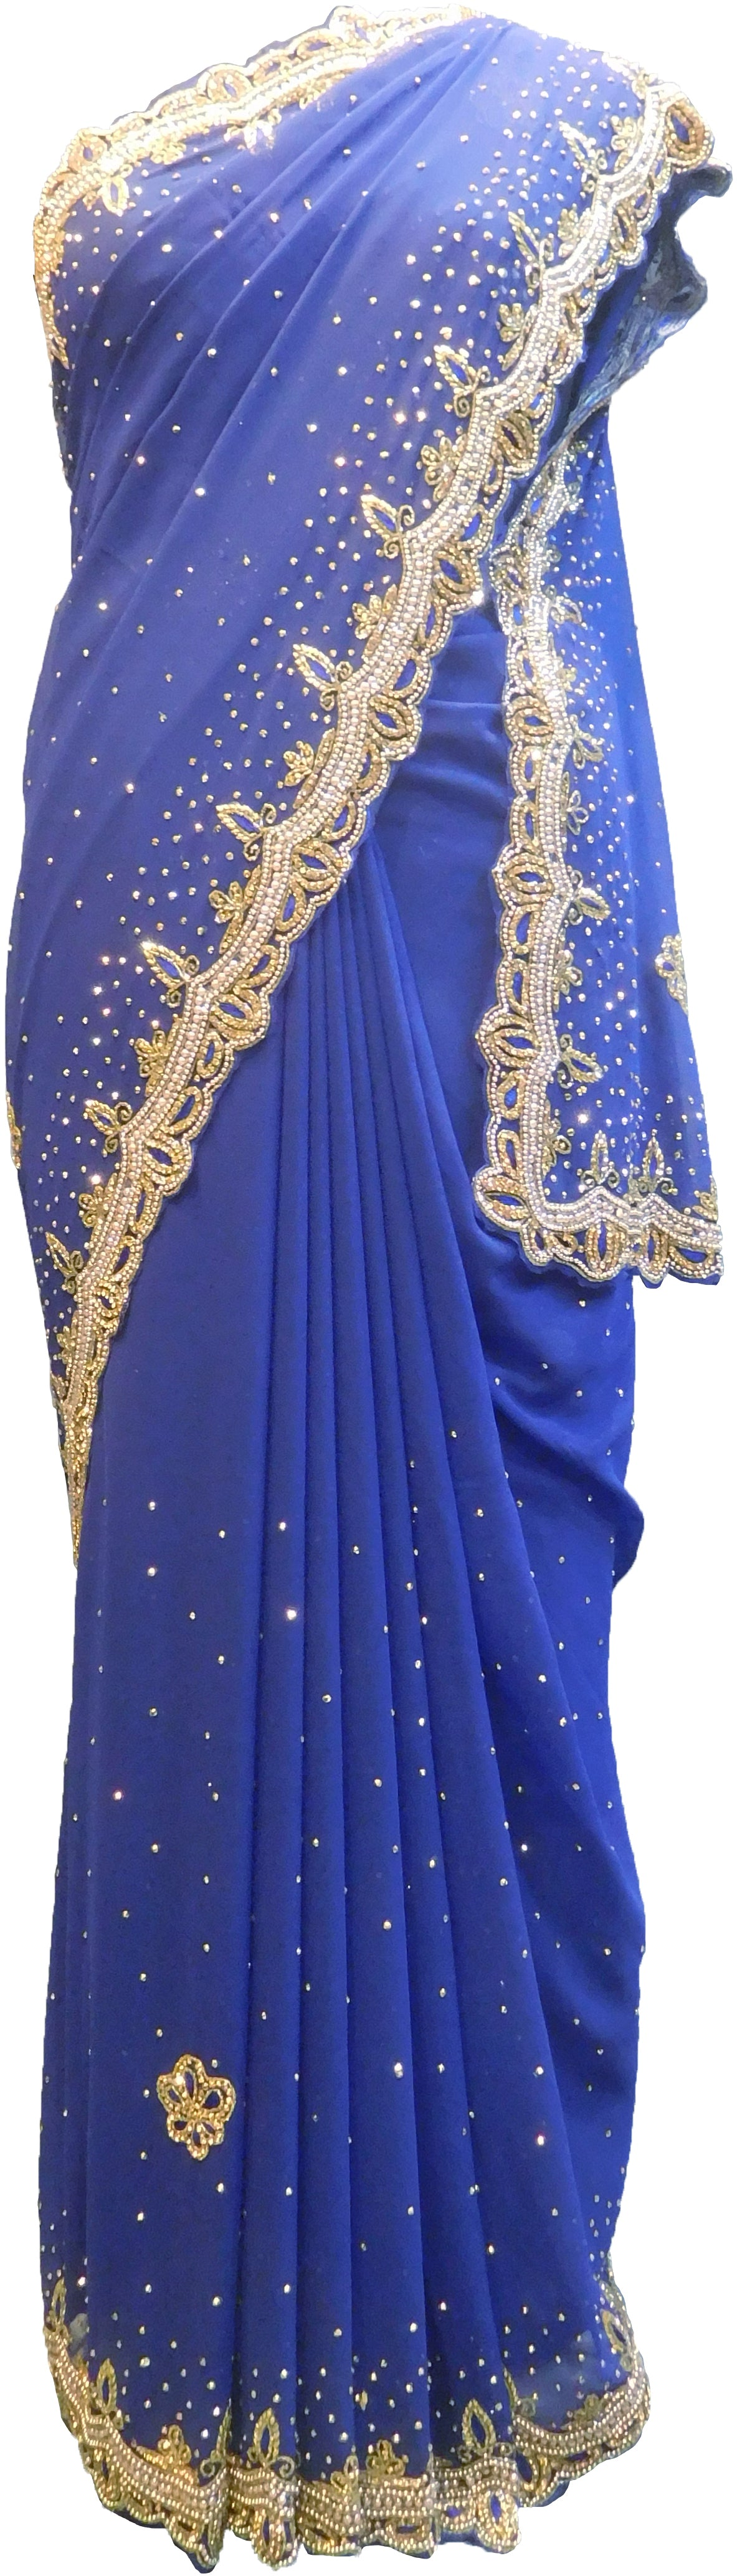 SMSAREE Blue Designer Wedding Partywear Georgette Cutdana Stone Beads Thread & Bullion Hand Embroidery Work Bridal Saree Sari With Blouse Piece F224